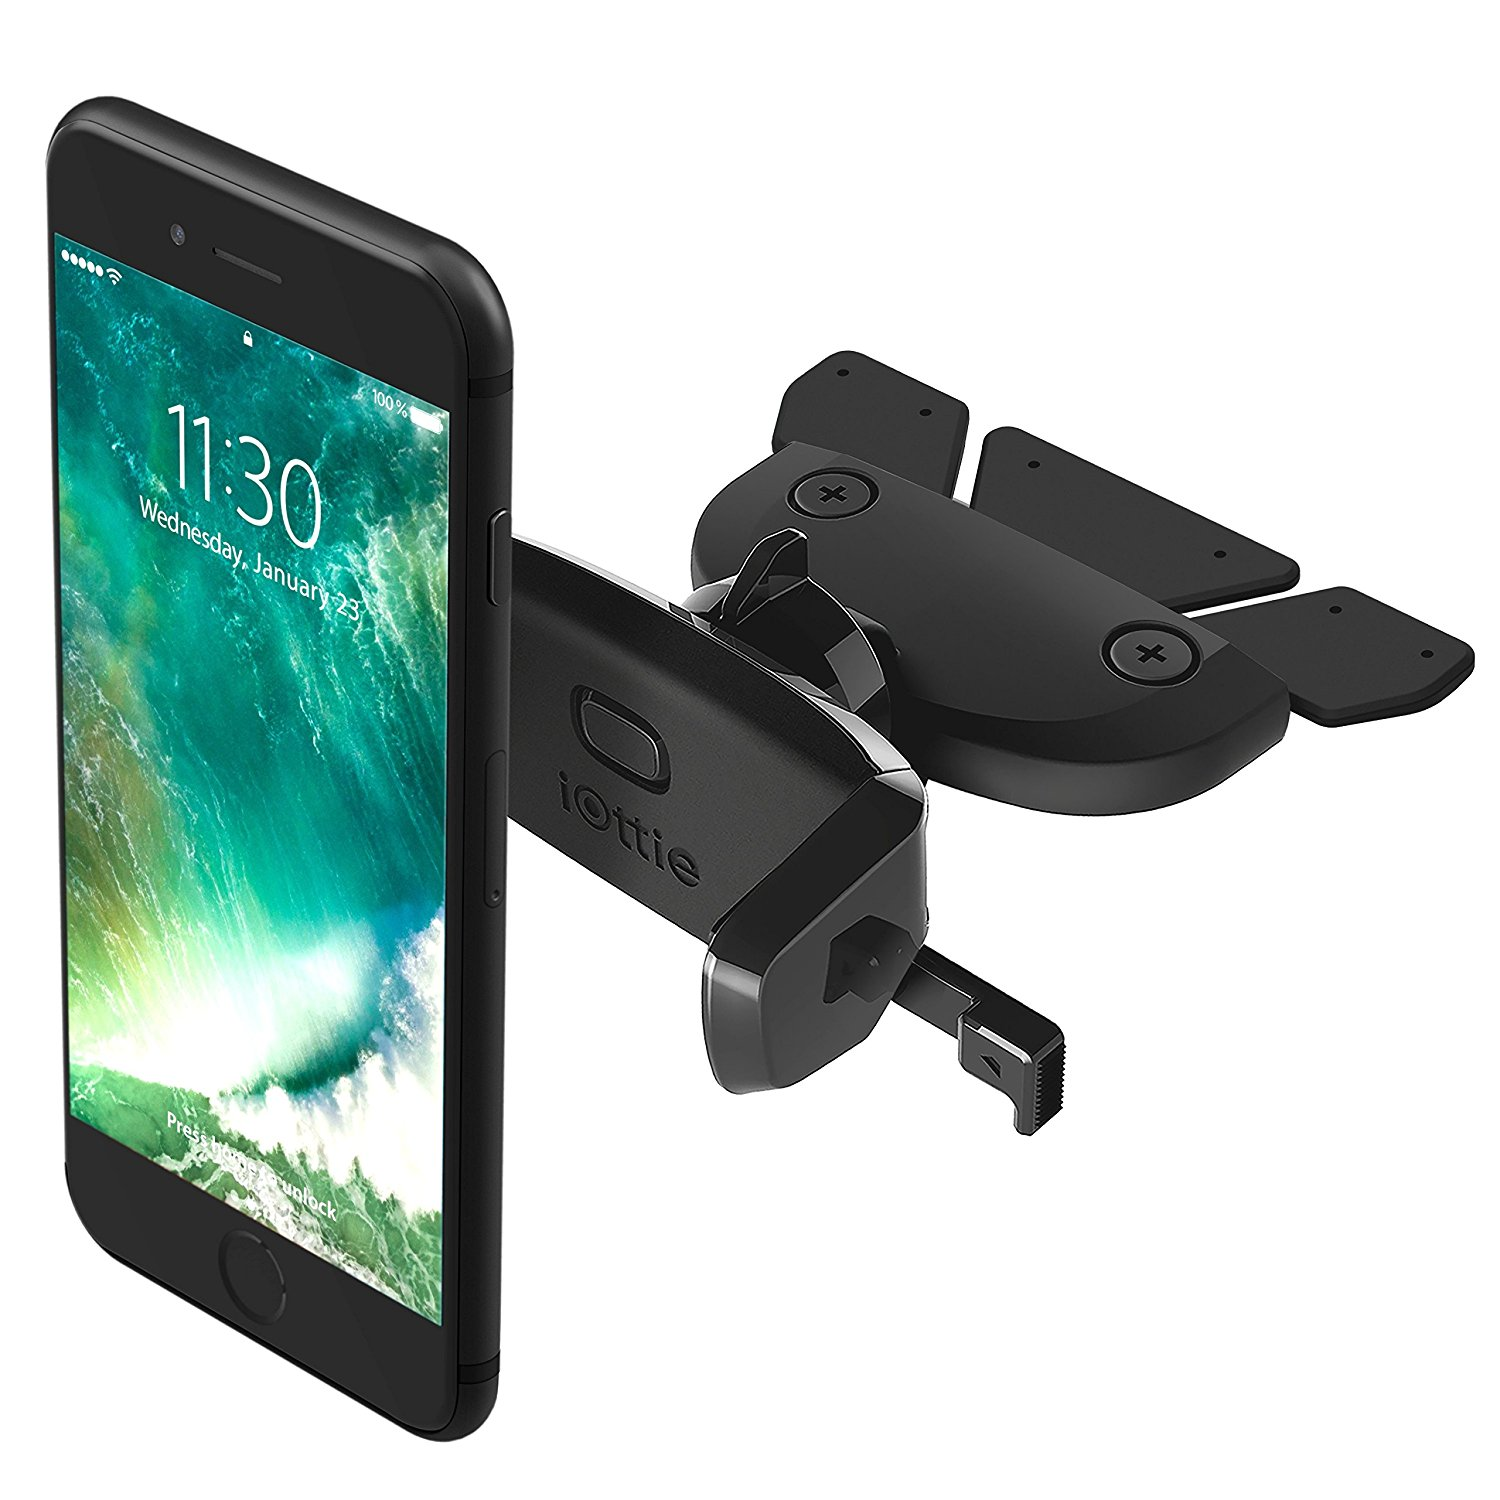 iOttie Easy One Touch Mini CD Slot Car Mount Holder Cradle for iPhone Galaxy Edge